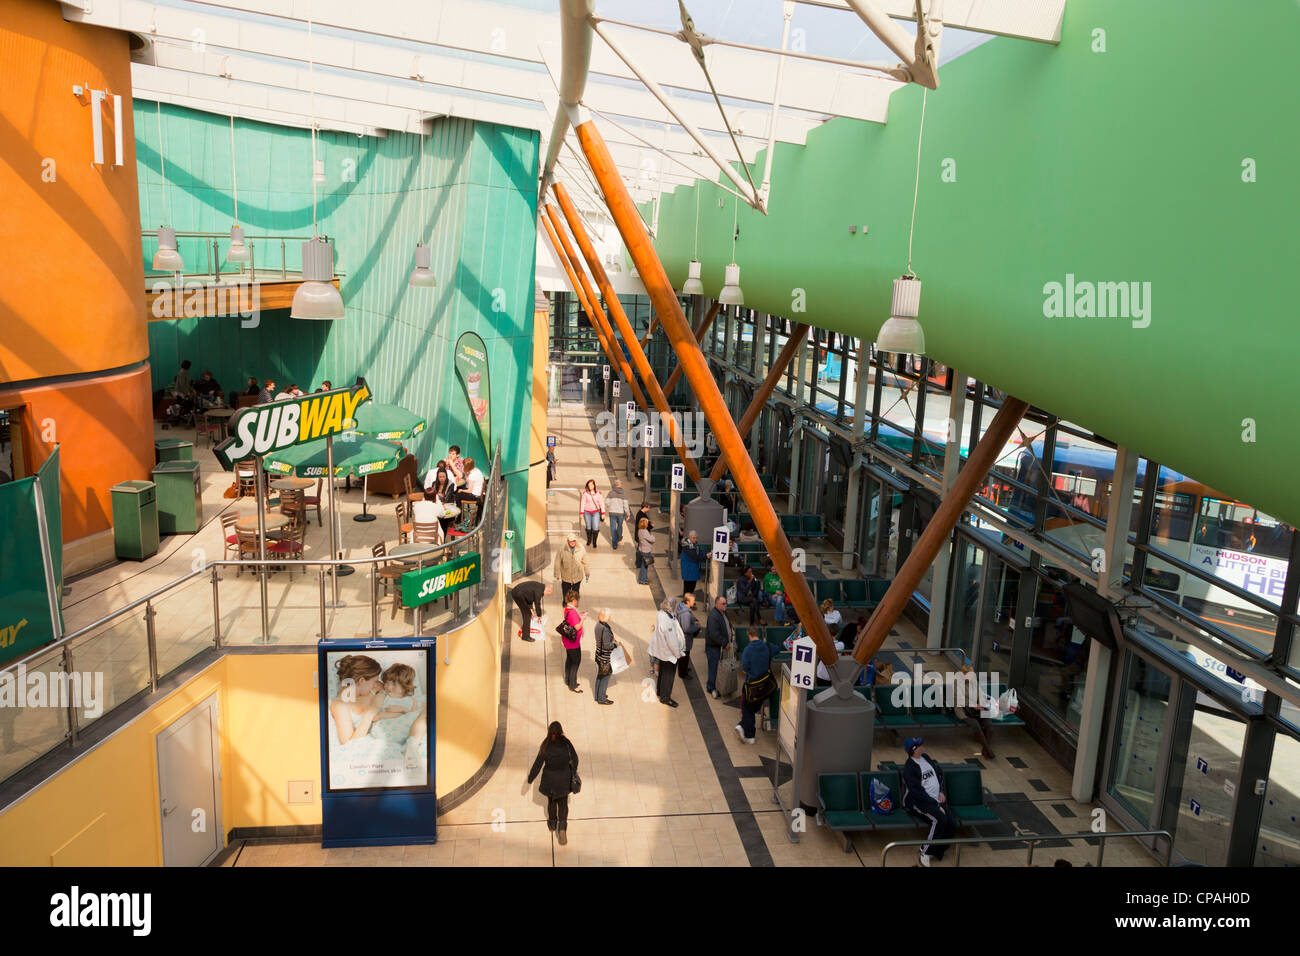 People waiting for buses at Barnsley Interchange, South Yorkshire, England, and a Subway restaurant. - Stock Image